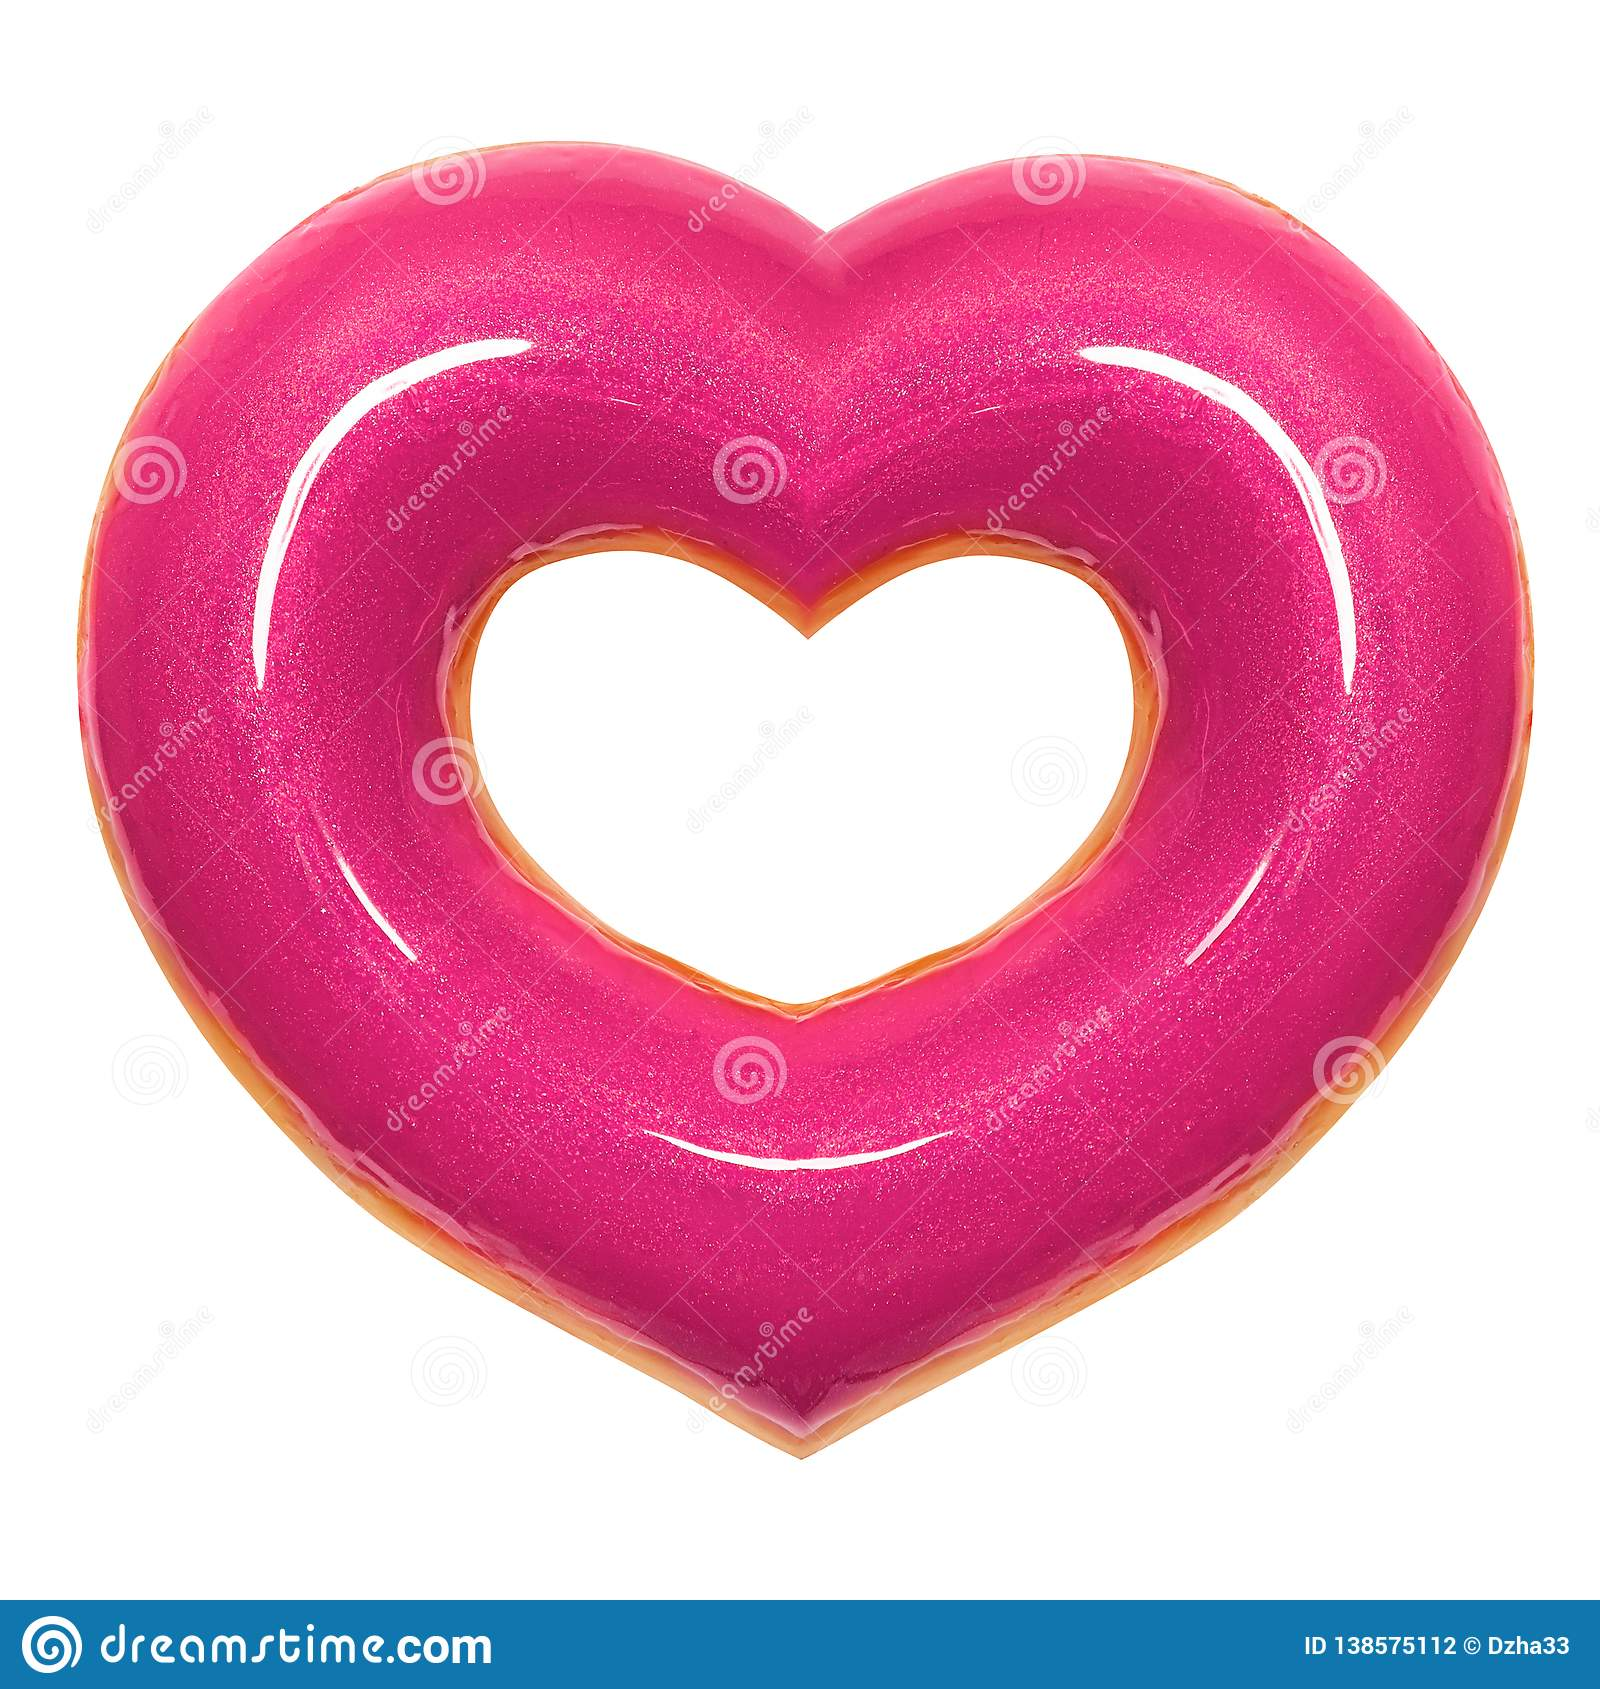 Donut pink heart shape with red glaze front view isolated on white background with clipping path. Donut Valentines day.